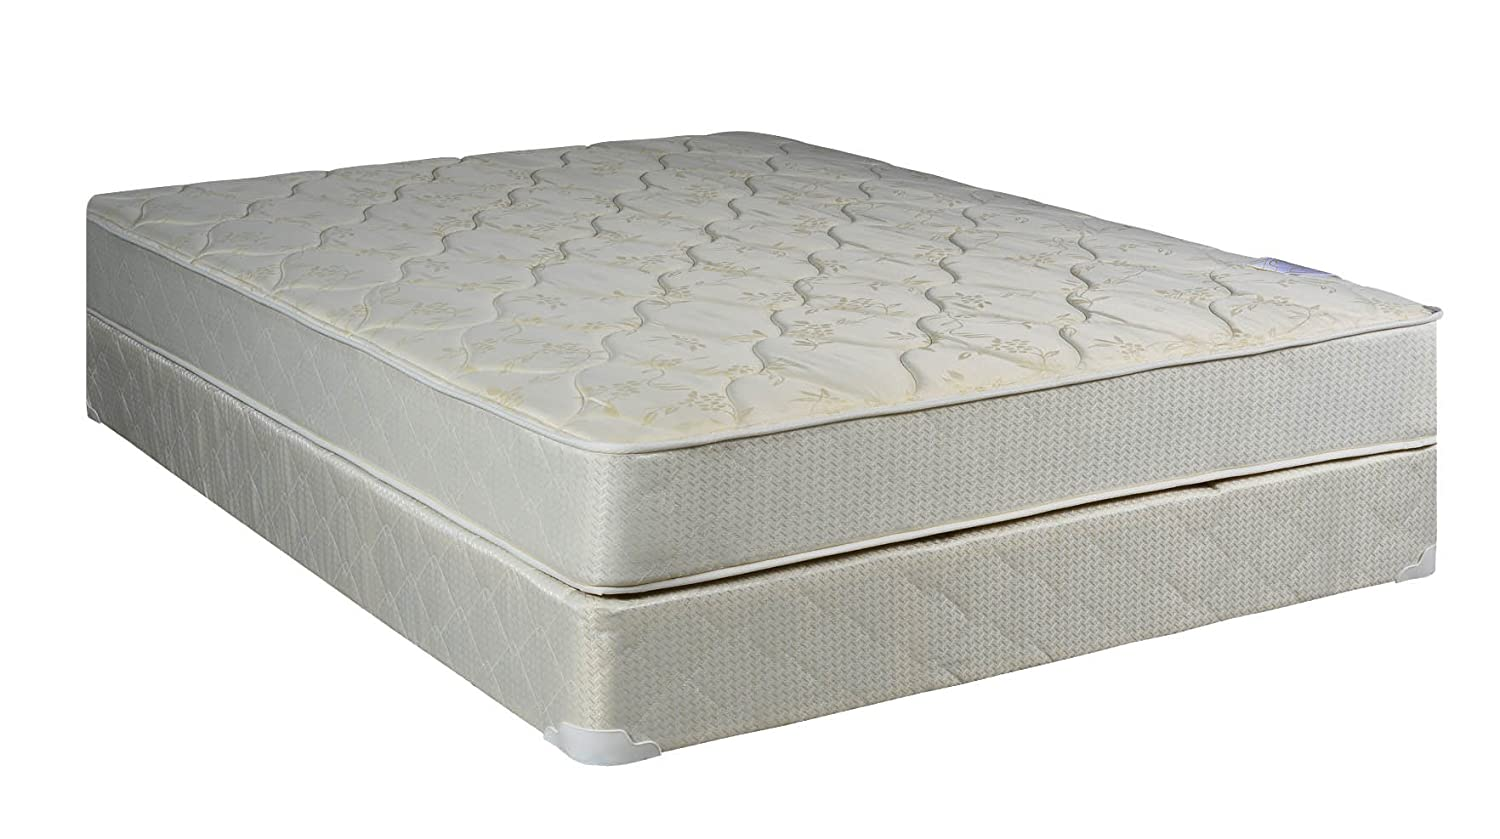 Twin Mattress For Sale Fleet Adjustable Queen Bed Leonu0027s Zoom 6inch Thick Mattress With